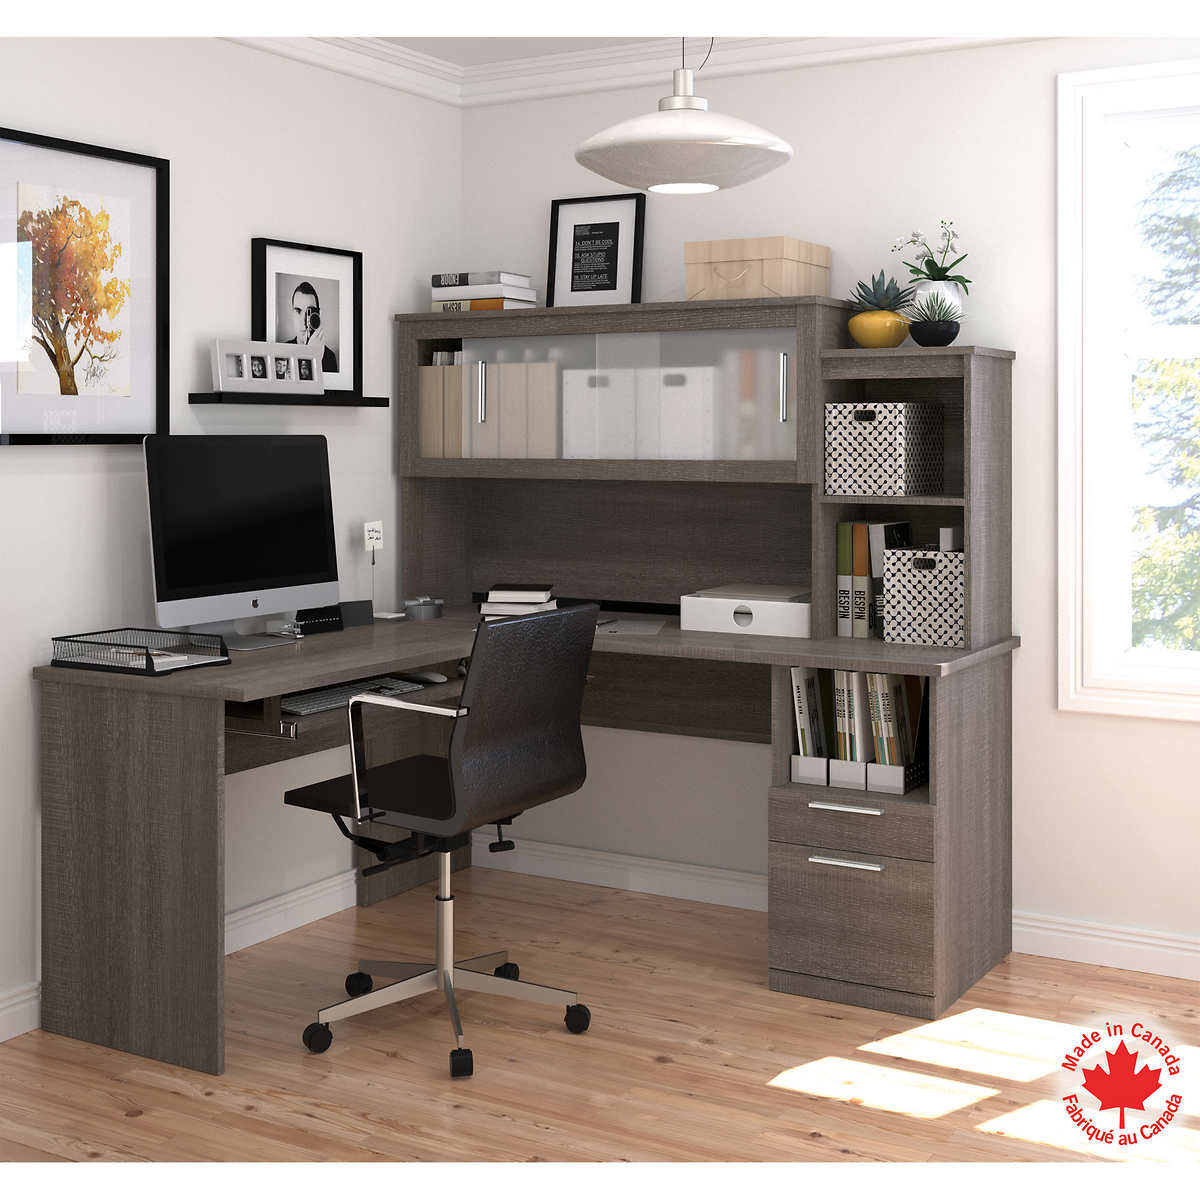 Office Furniture Kitchener Desks